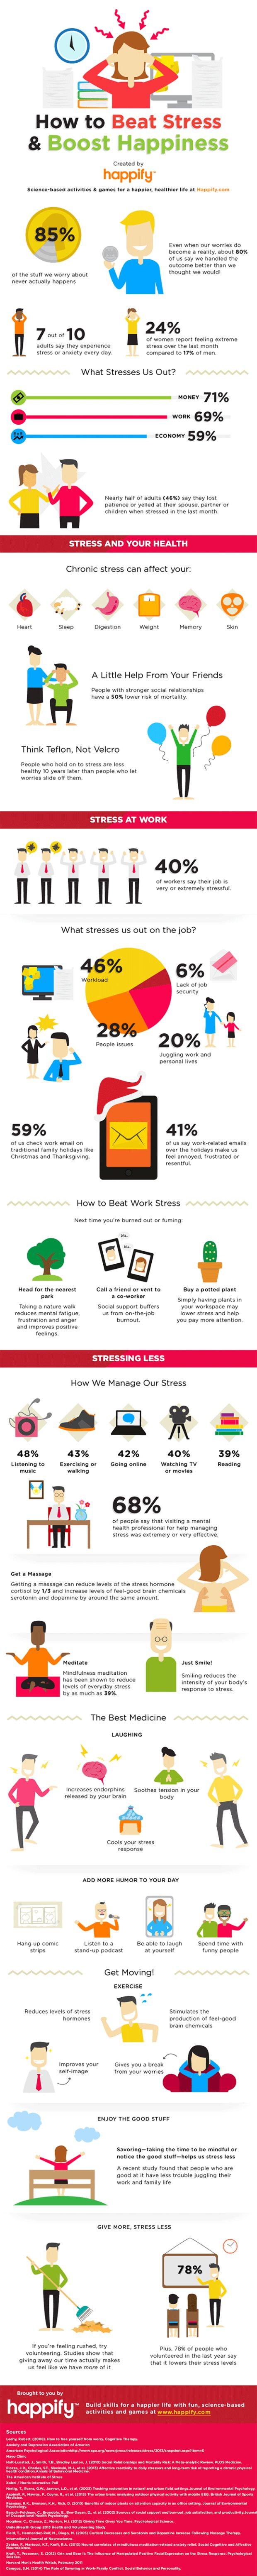 How To Be Happy And Beat Stress | Infographic http://theultralinx.com/2014/04/happy-beat-stress-infographic.html